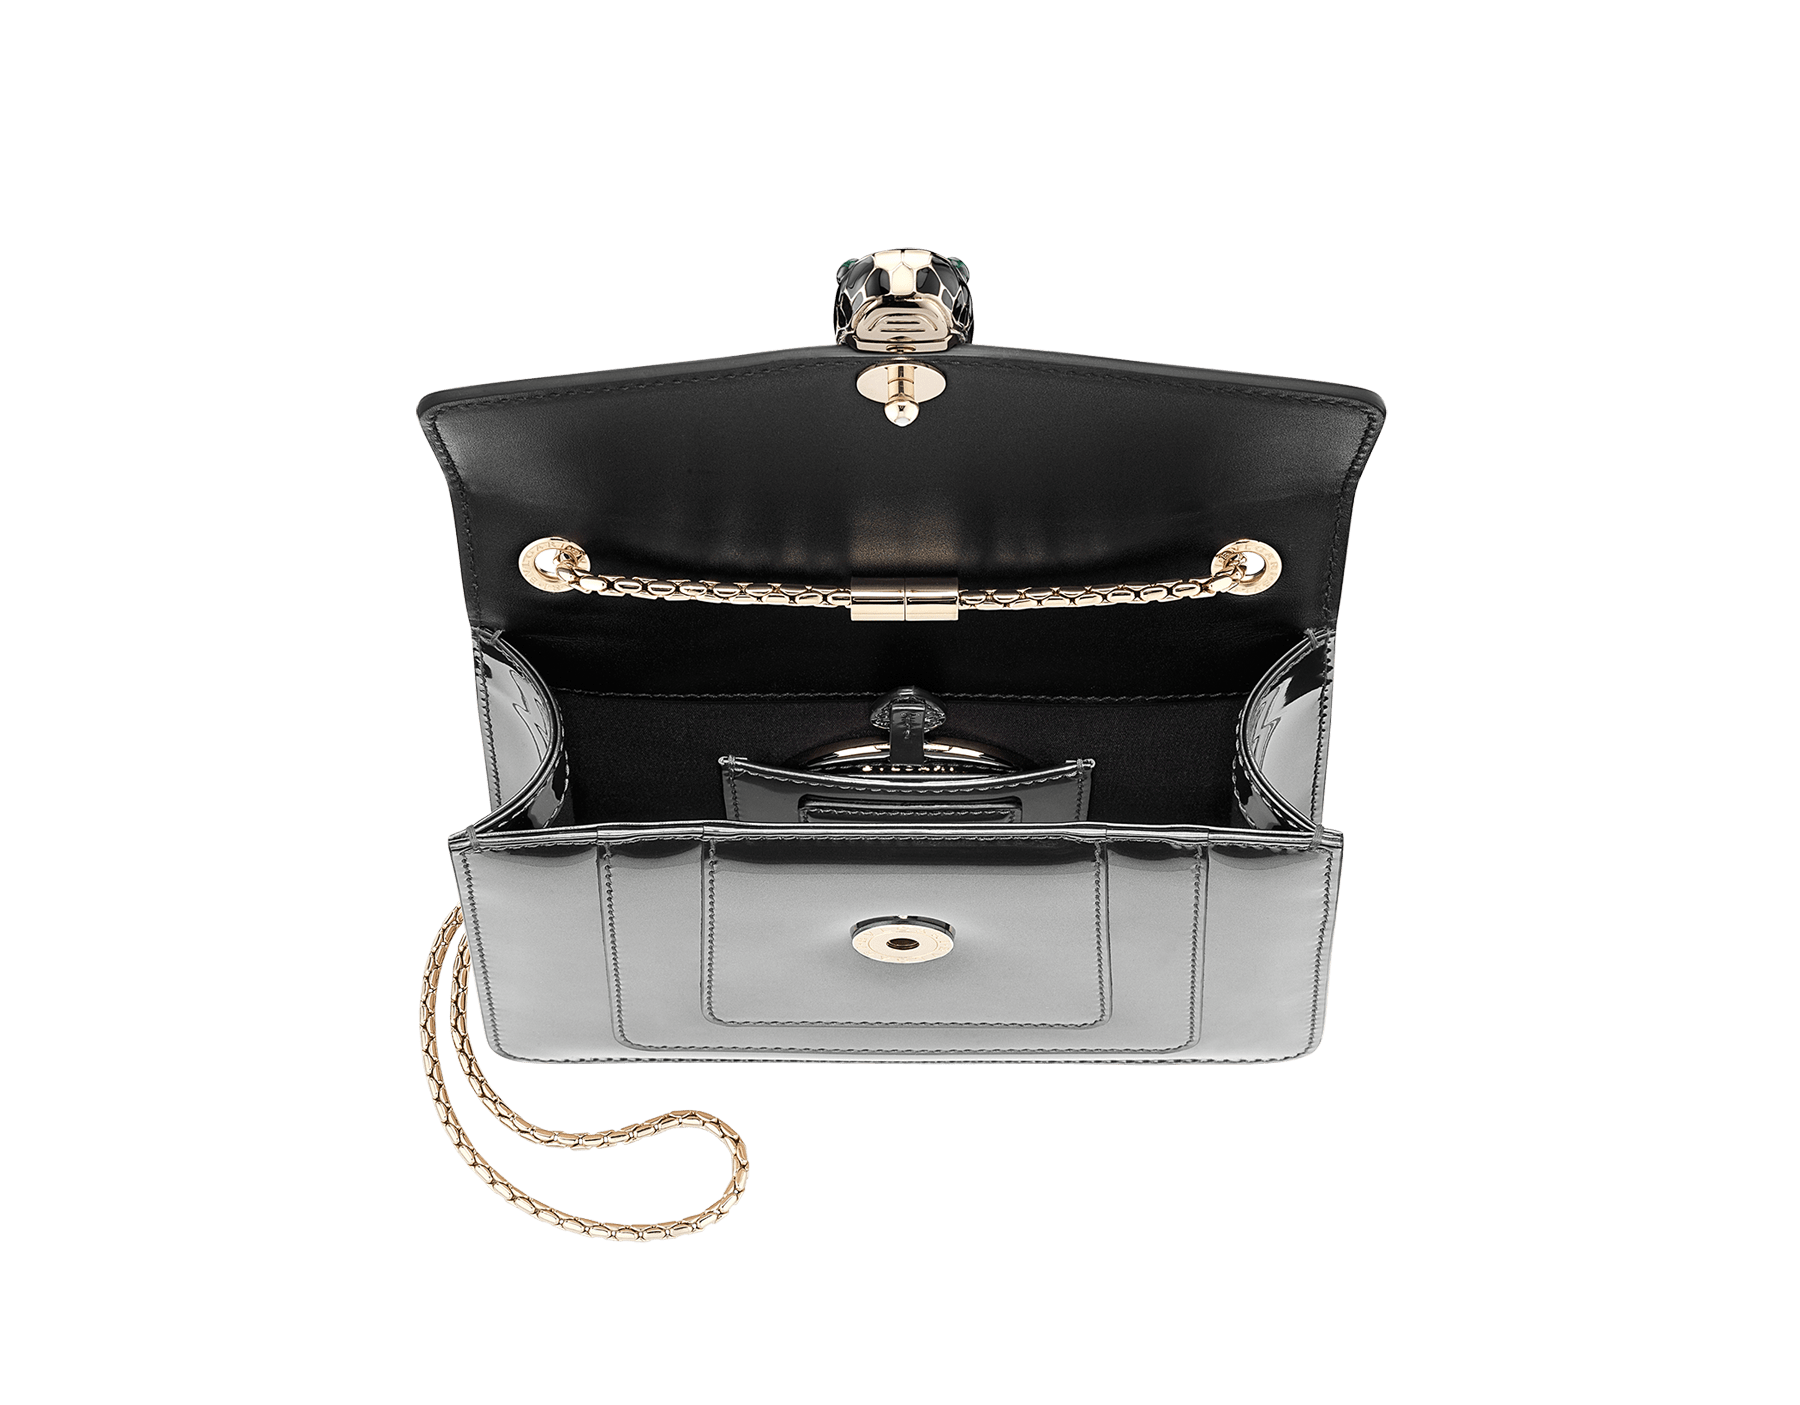 Flap cover bag Serpenti Forever in forest emerald brushed metallic calf leather. Brass light gold plated tempting snake head closure in black and white enamel, with eyes in green malachite. 422-BMCLa image 4